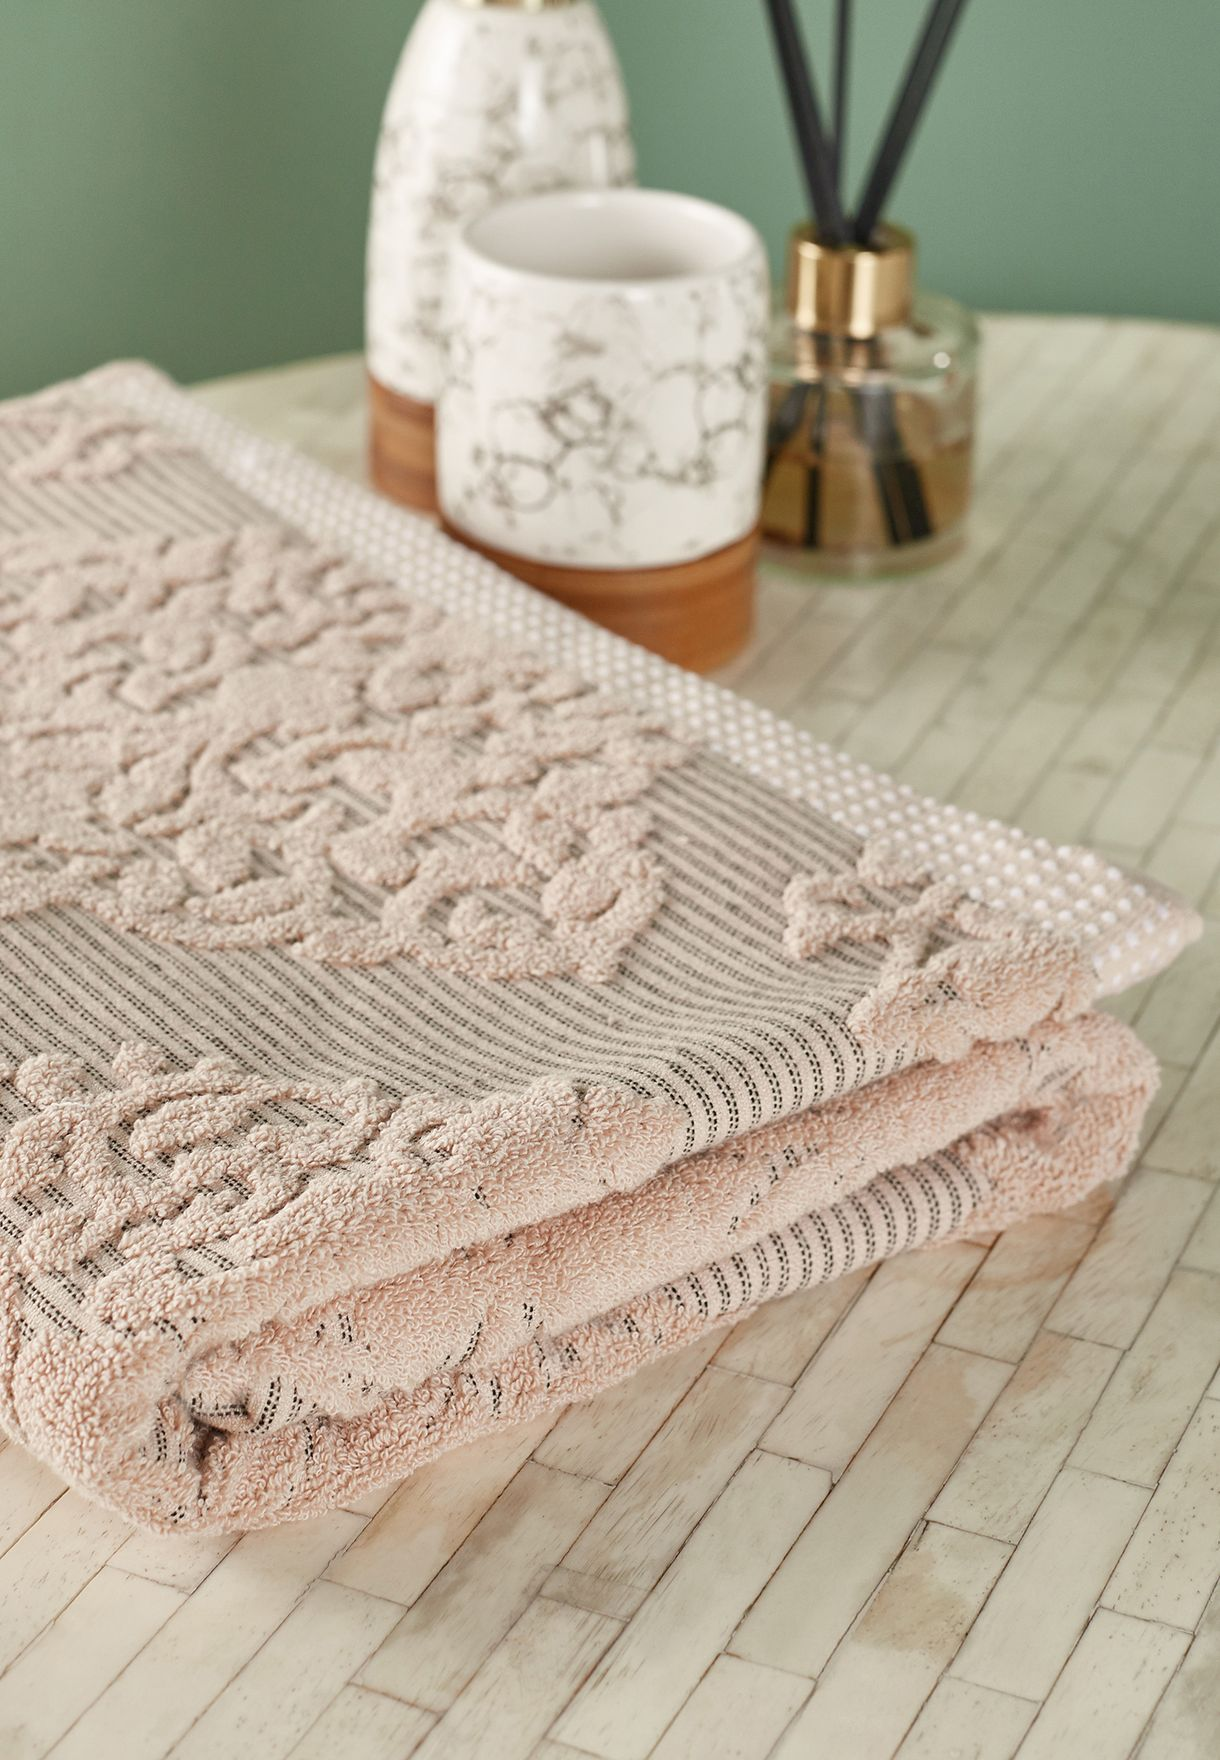 Cream Patterned Bath Towel